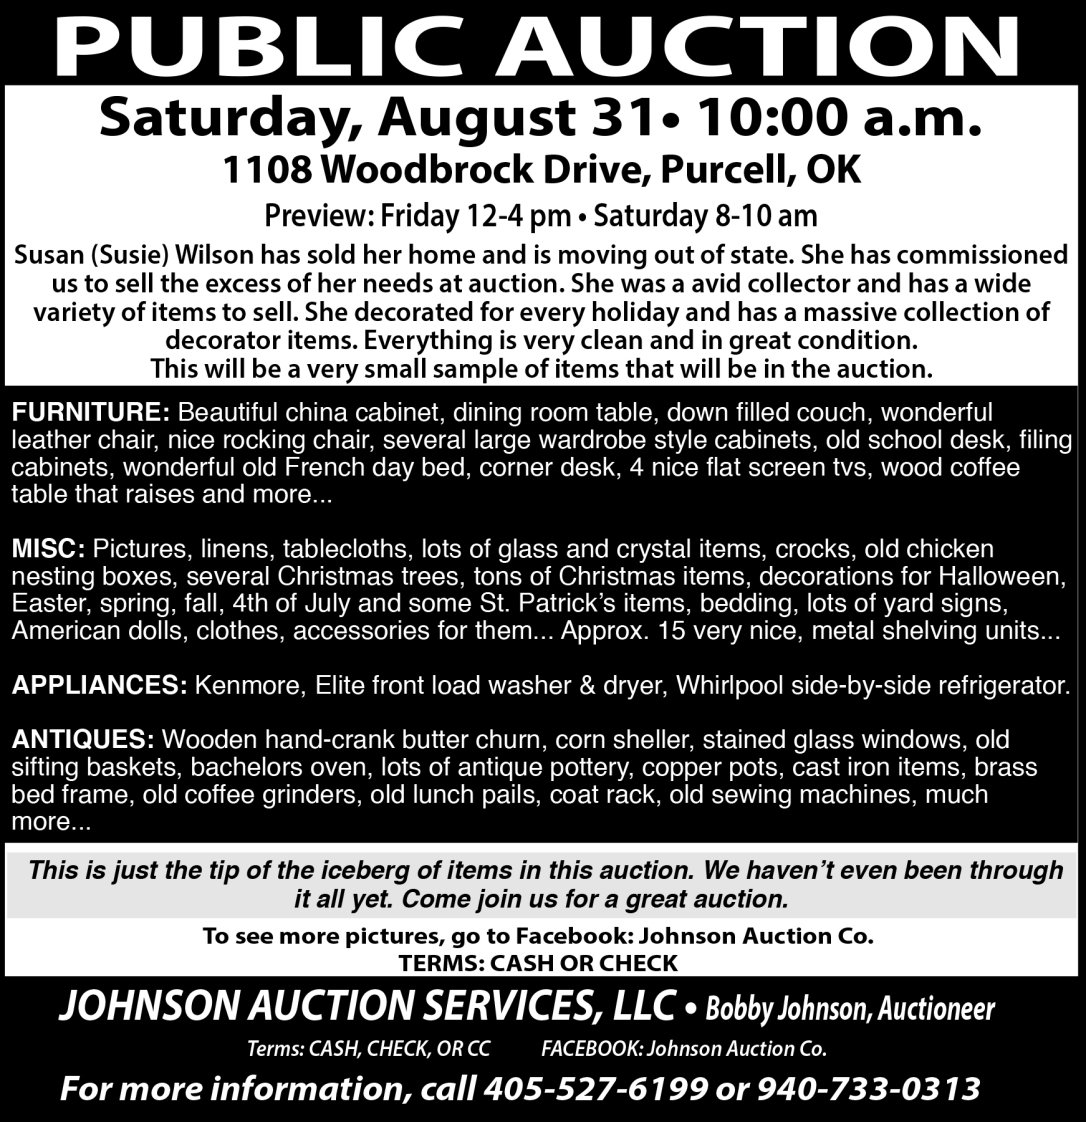 Johnson Auction Services 3x5 8.28.19.jpg